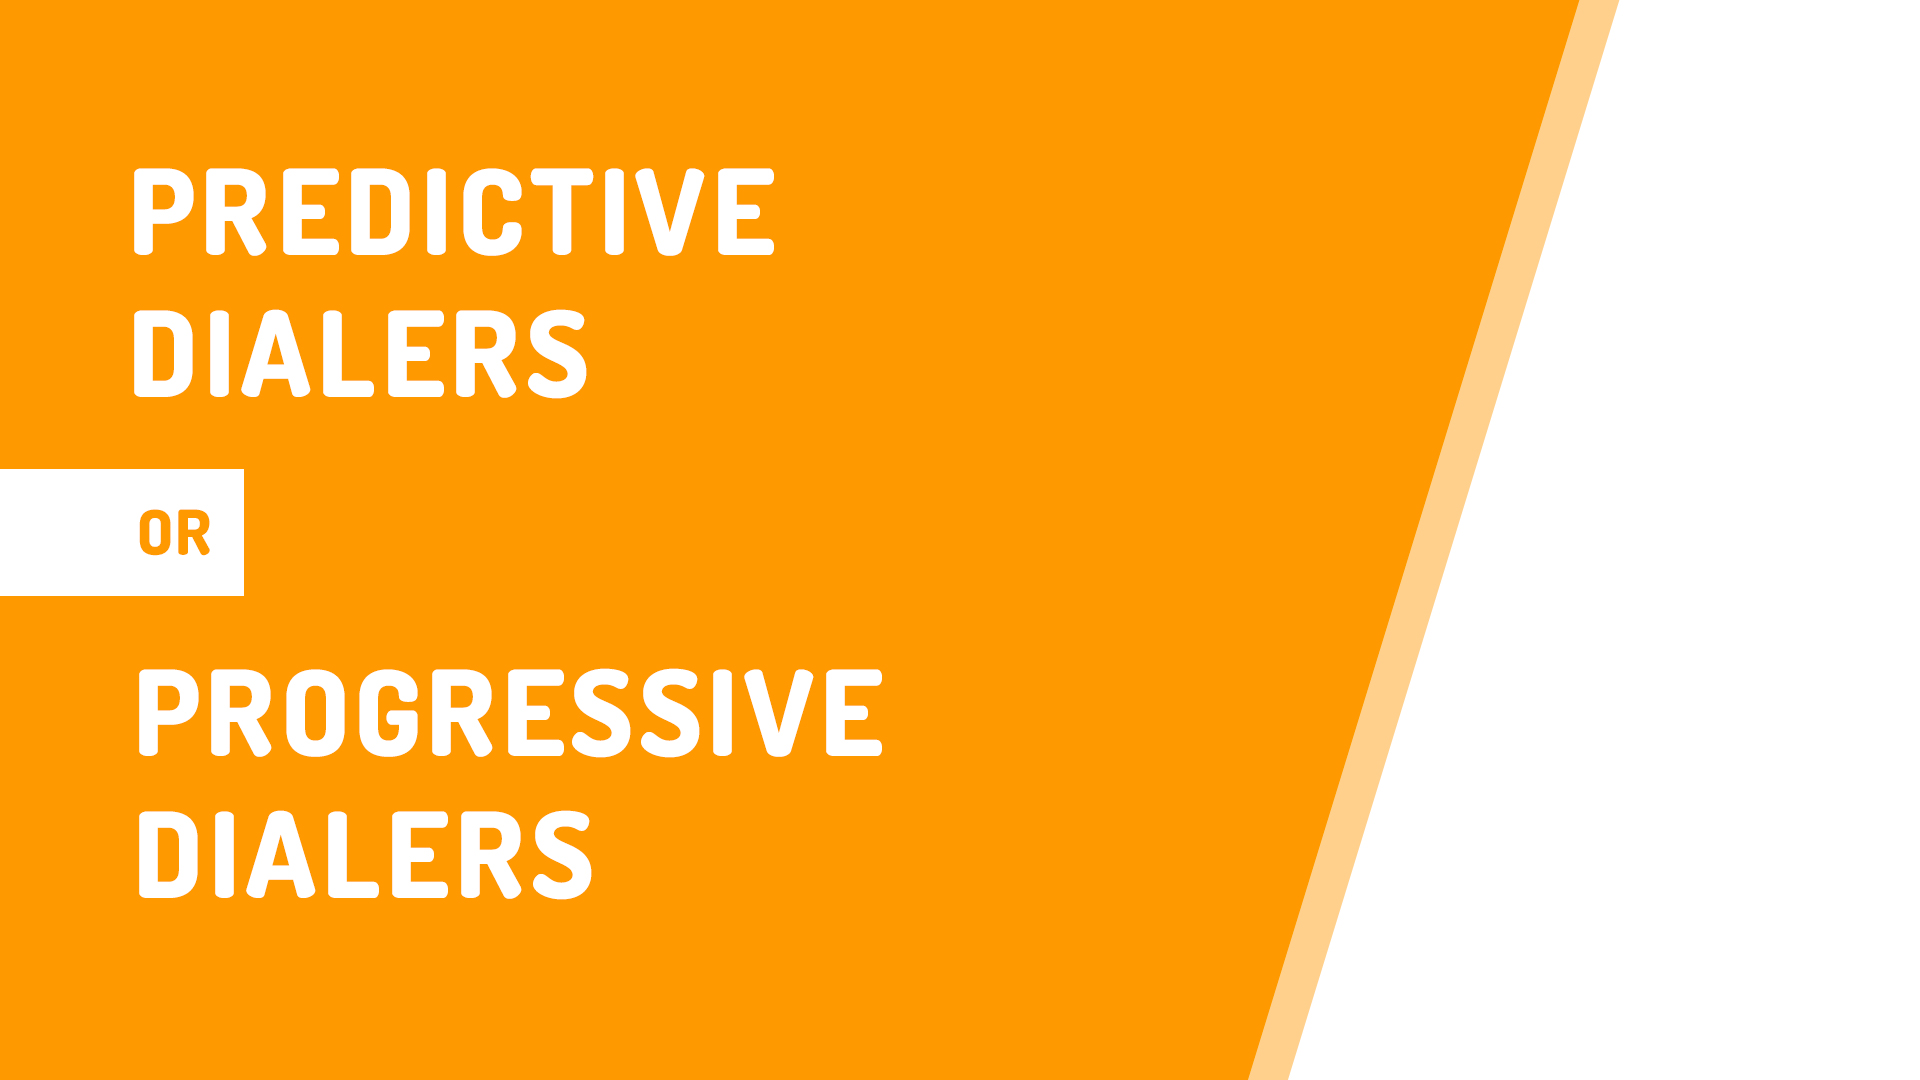 Predictive Dialers or Progressive Dialers - Which is Right for Your Business?